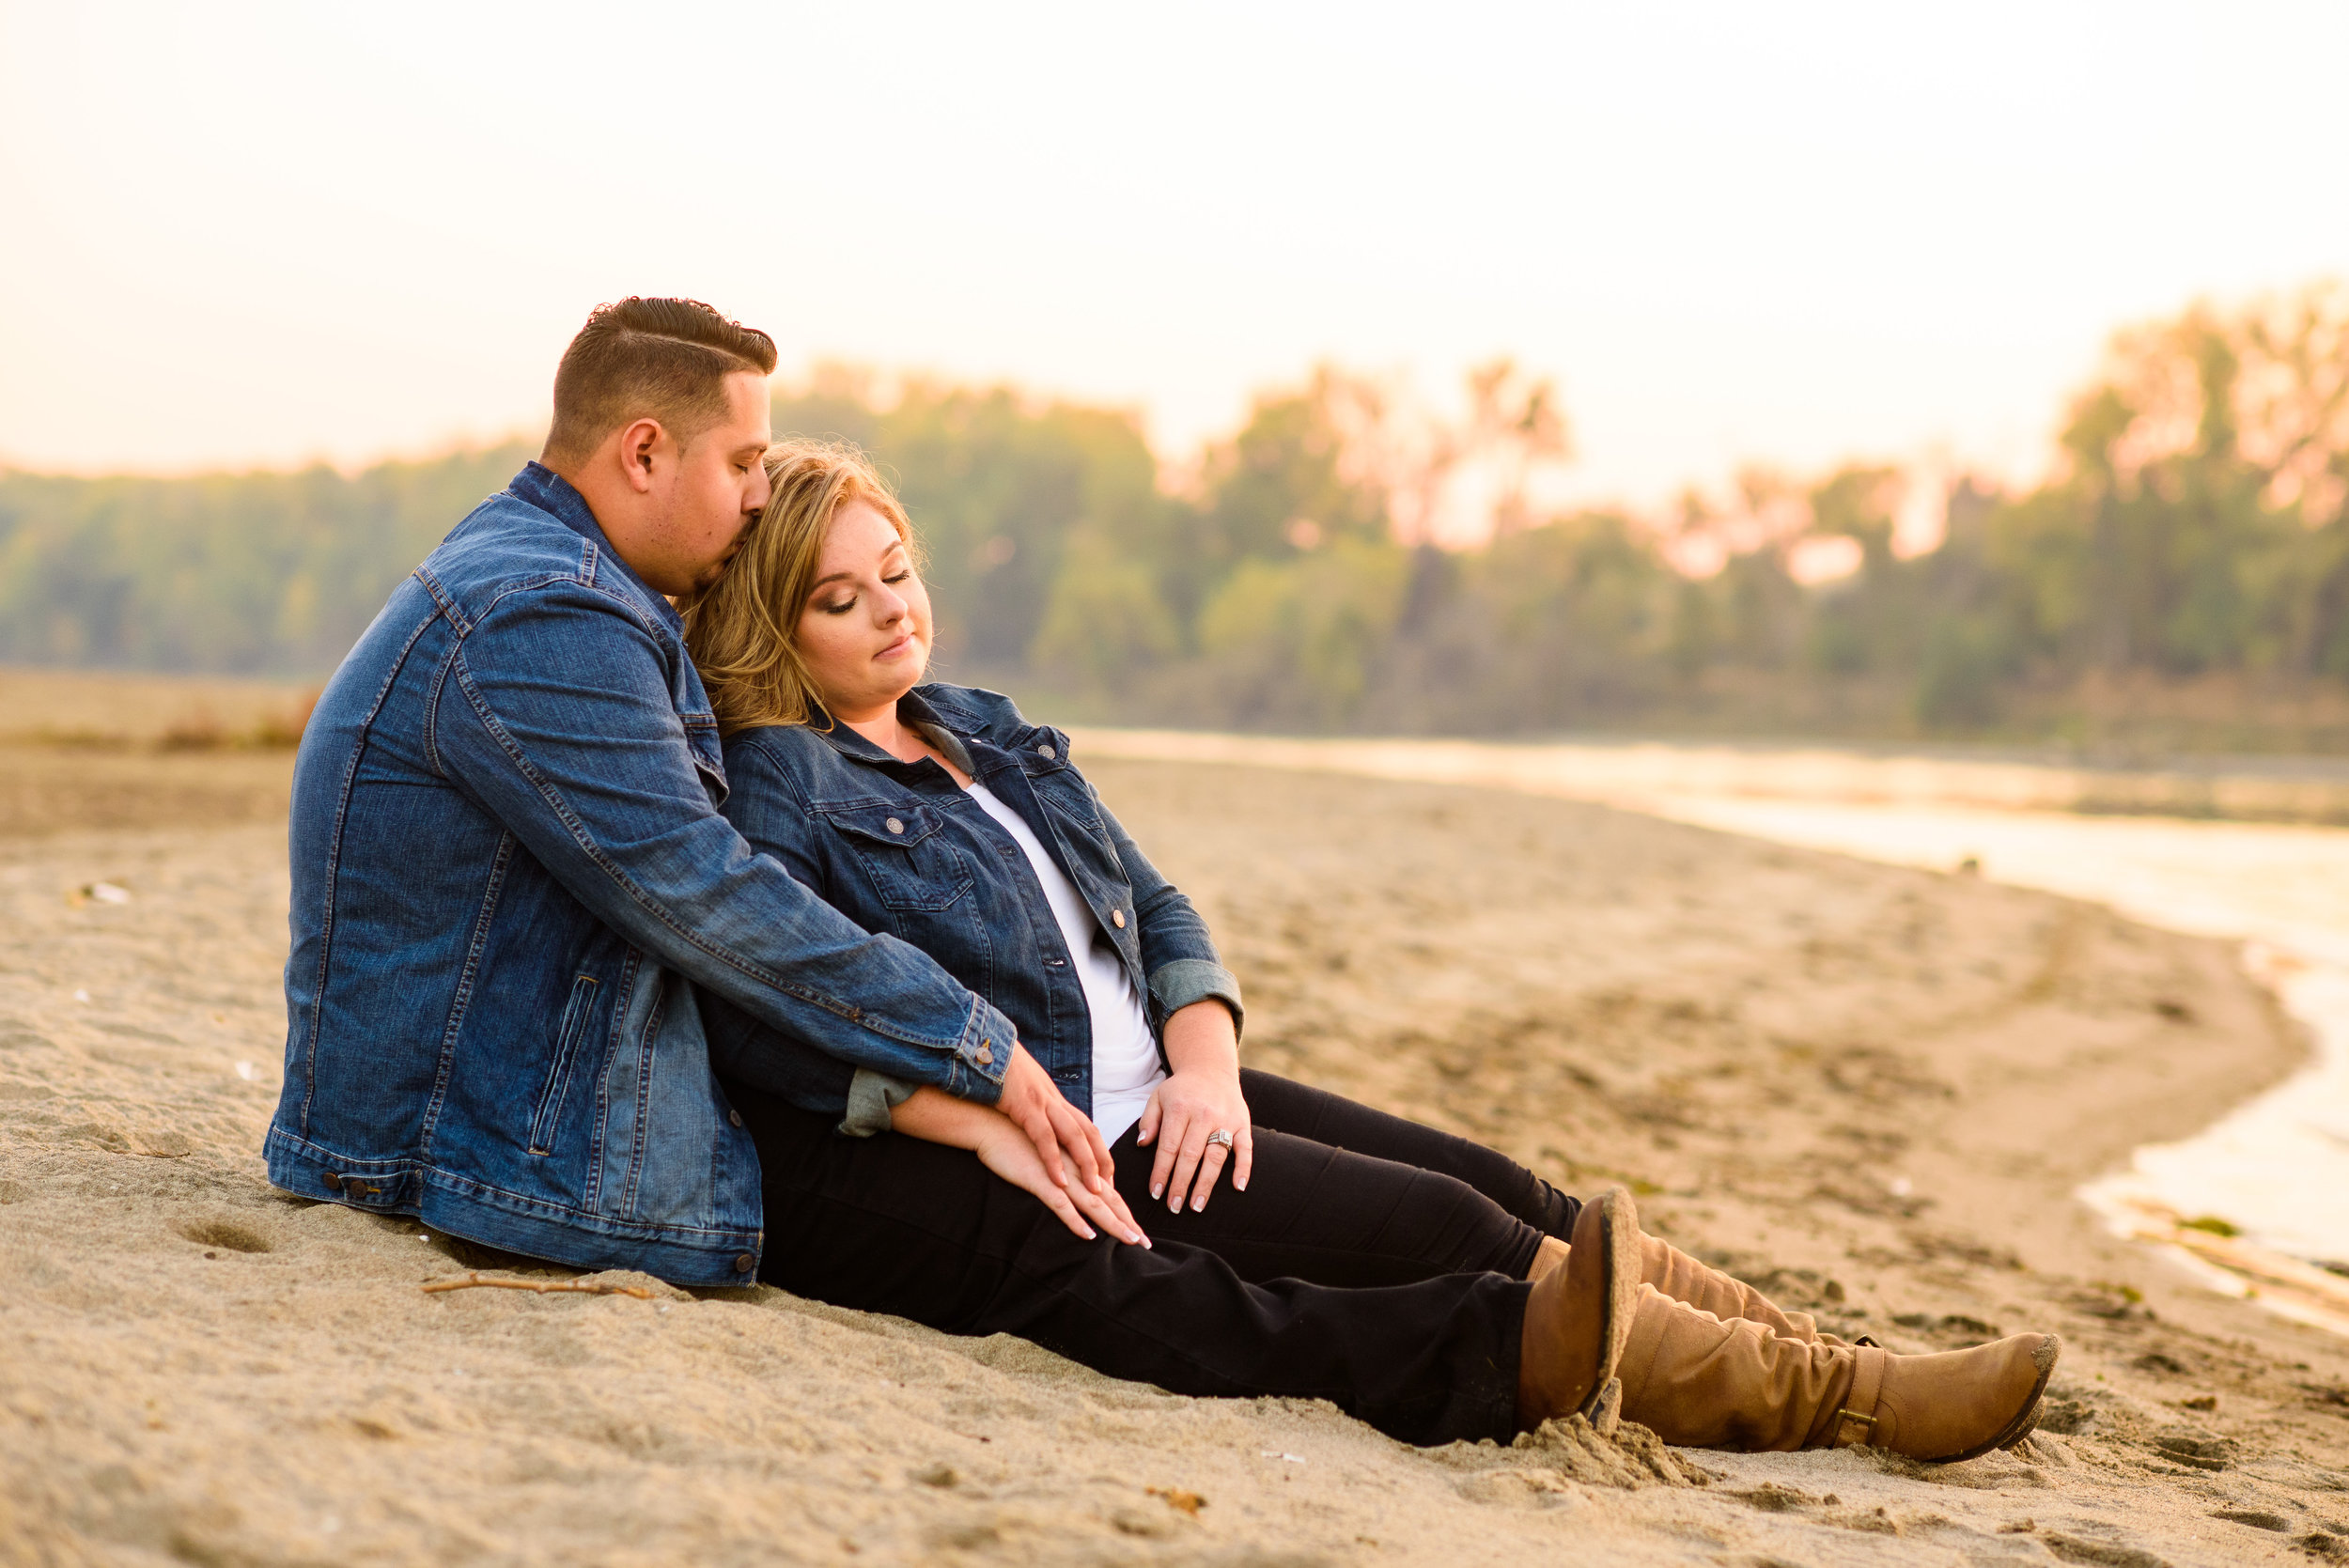 lynzie-javier-012-sacramento-california-engagement-wedding-photographer-katherine-nicole-photography.JPG